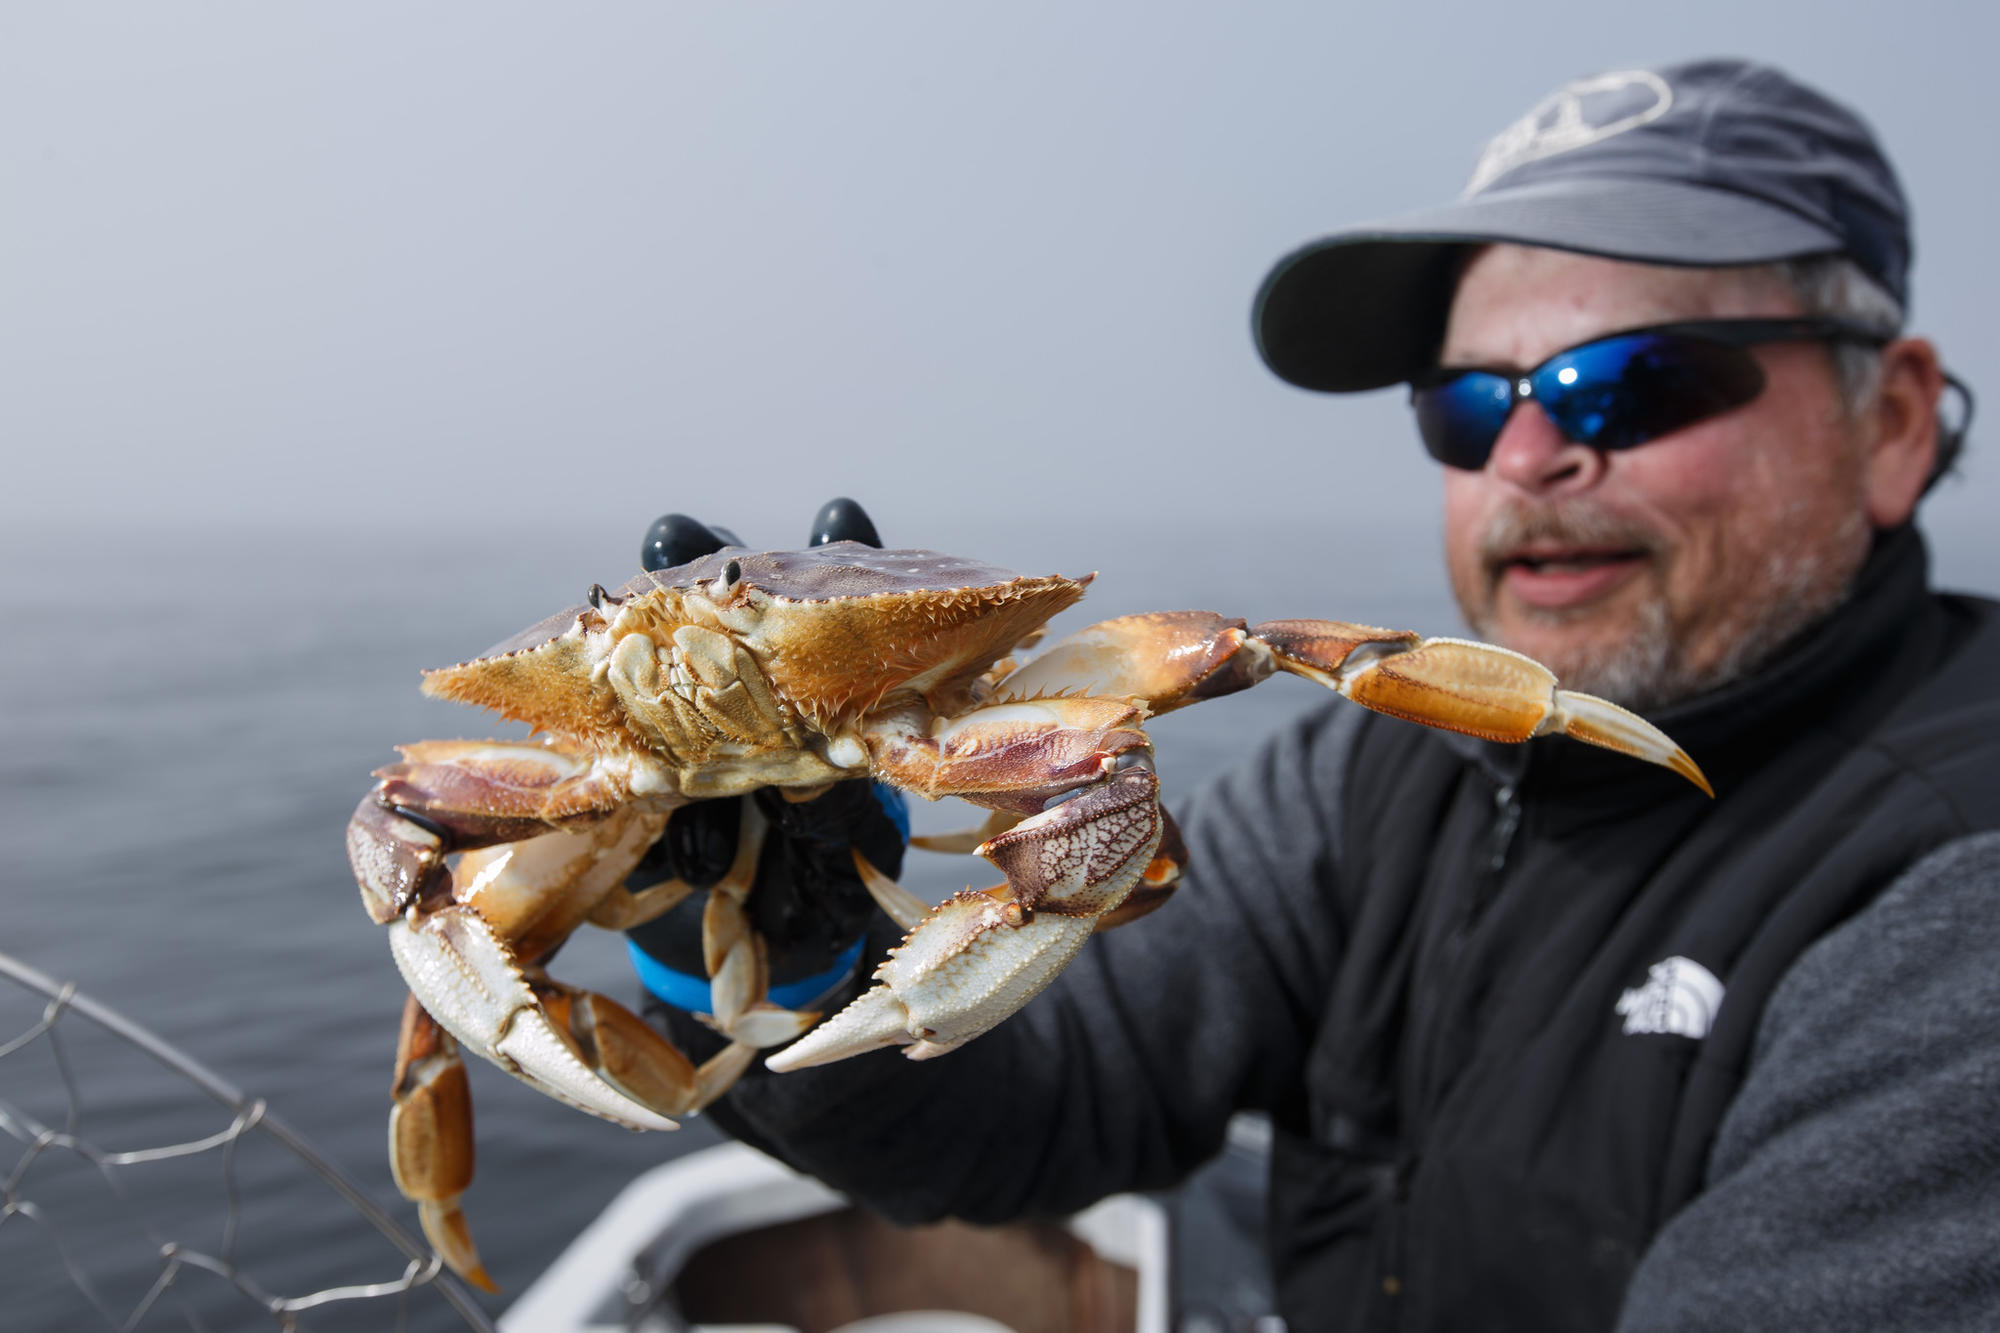 Clamming and crabbing in Oregon